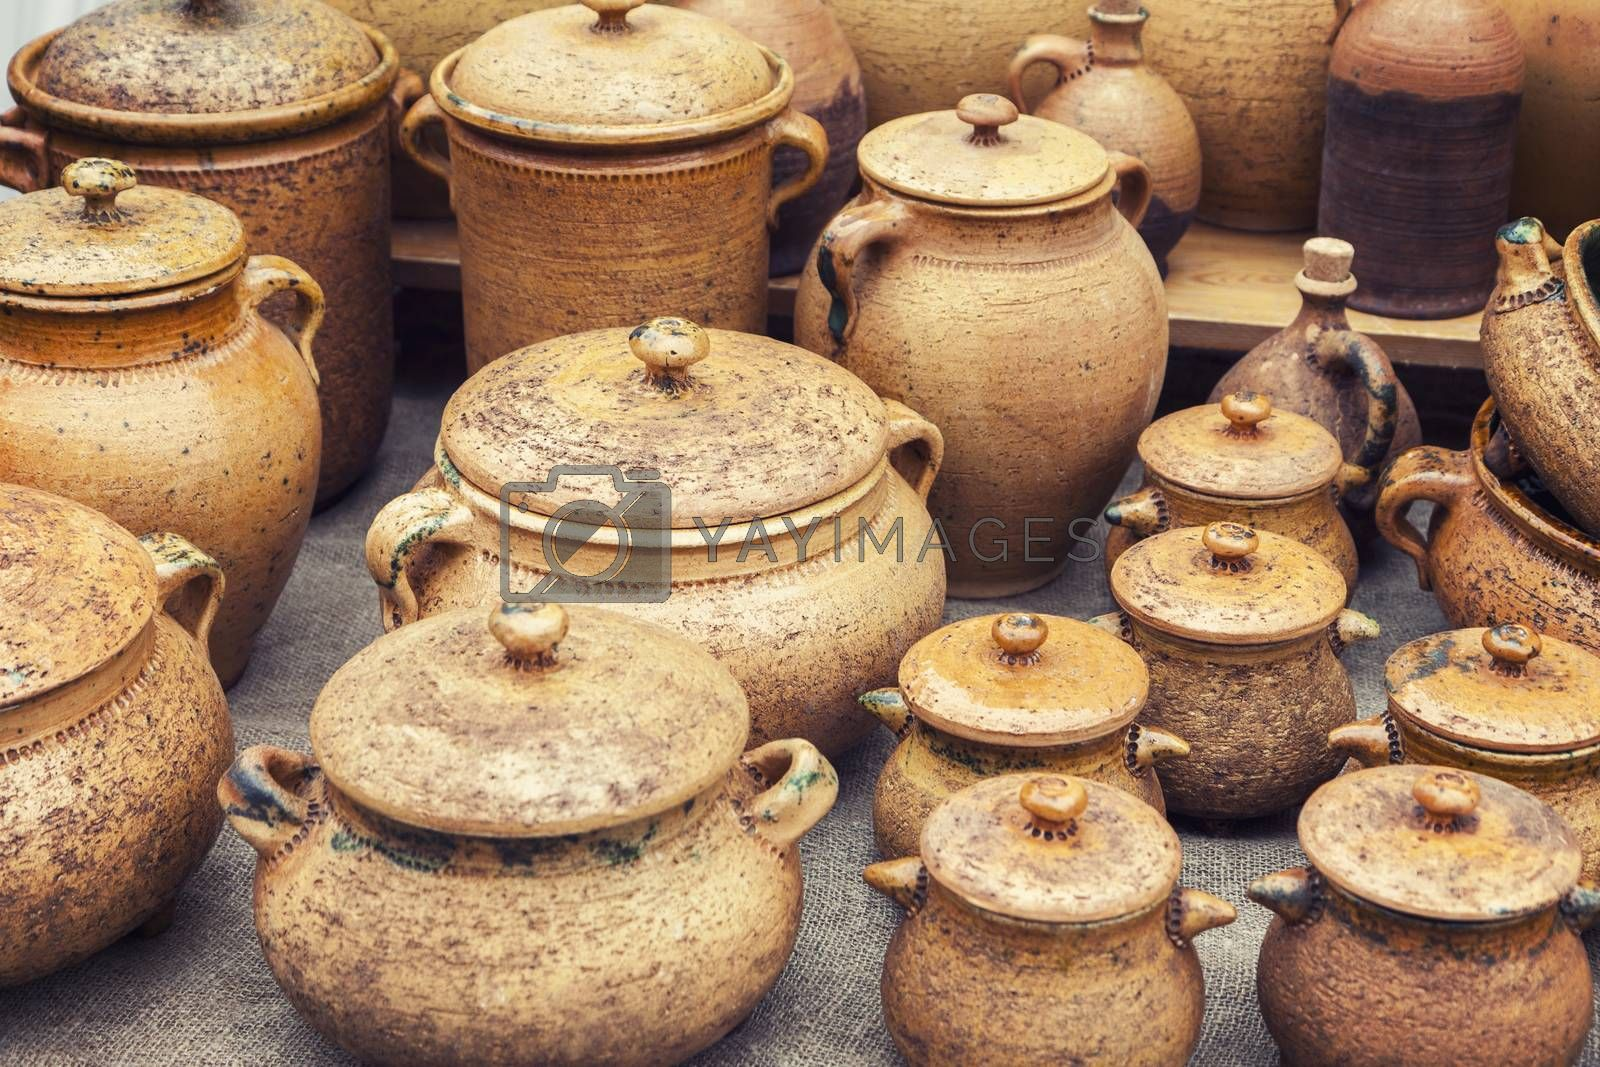 Group of traditional handmade pottery